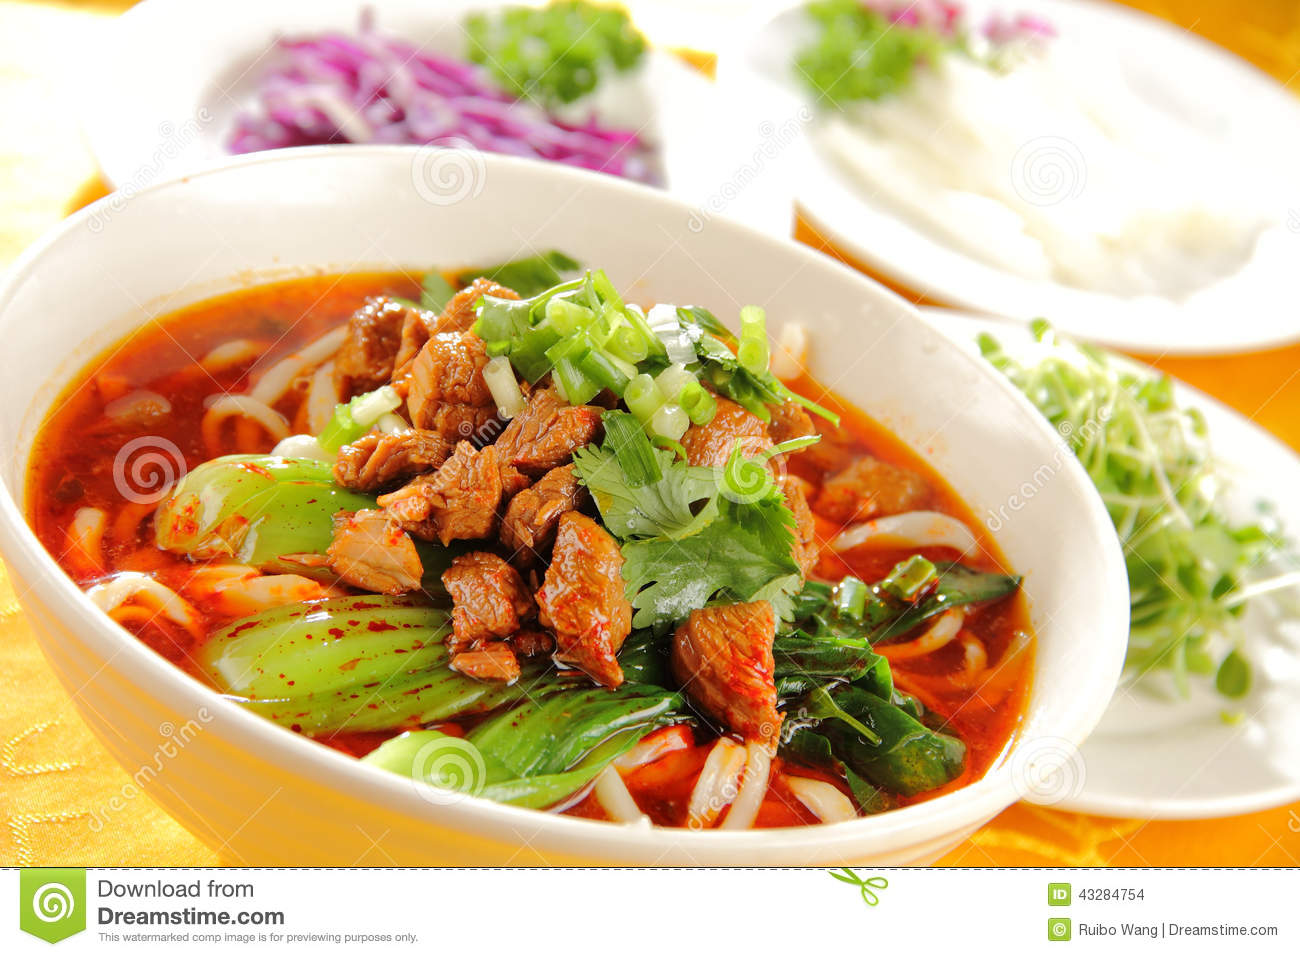 Chinese delicious food royalty free stock photo 43286775 - Delicious chinese cuisine ...